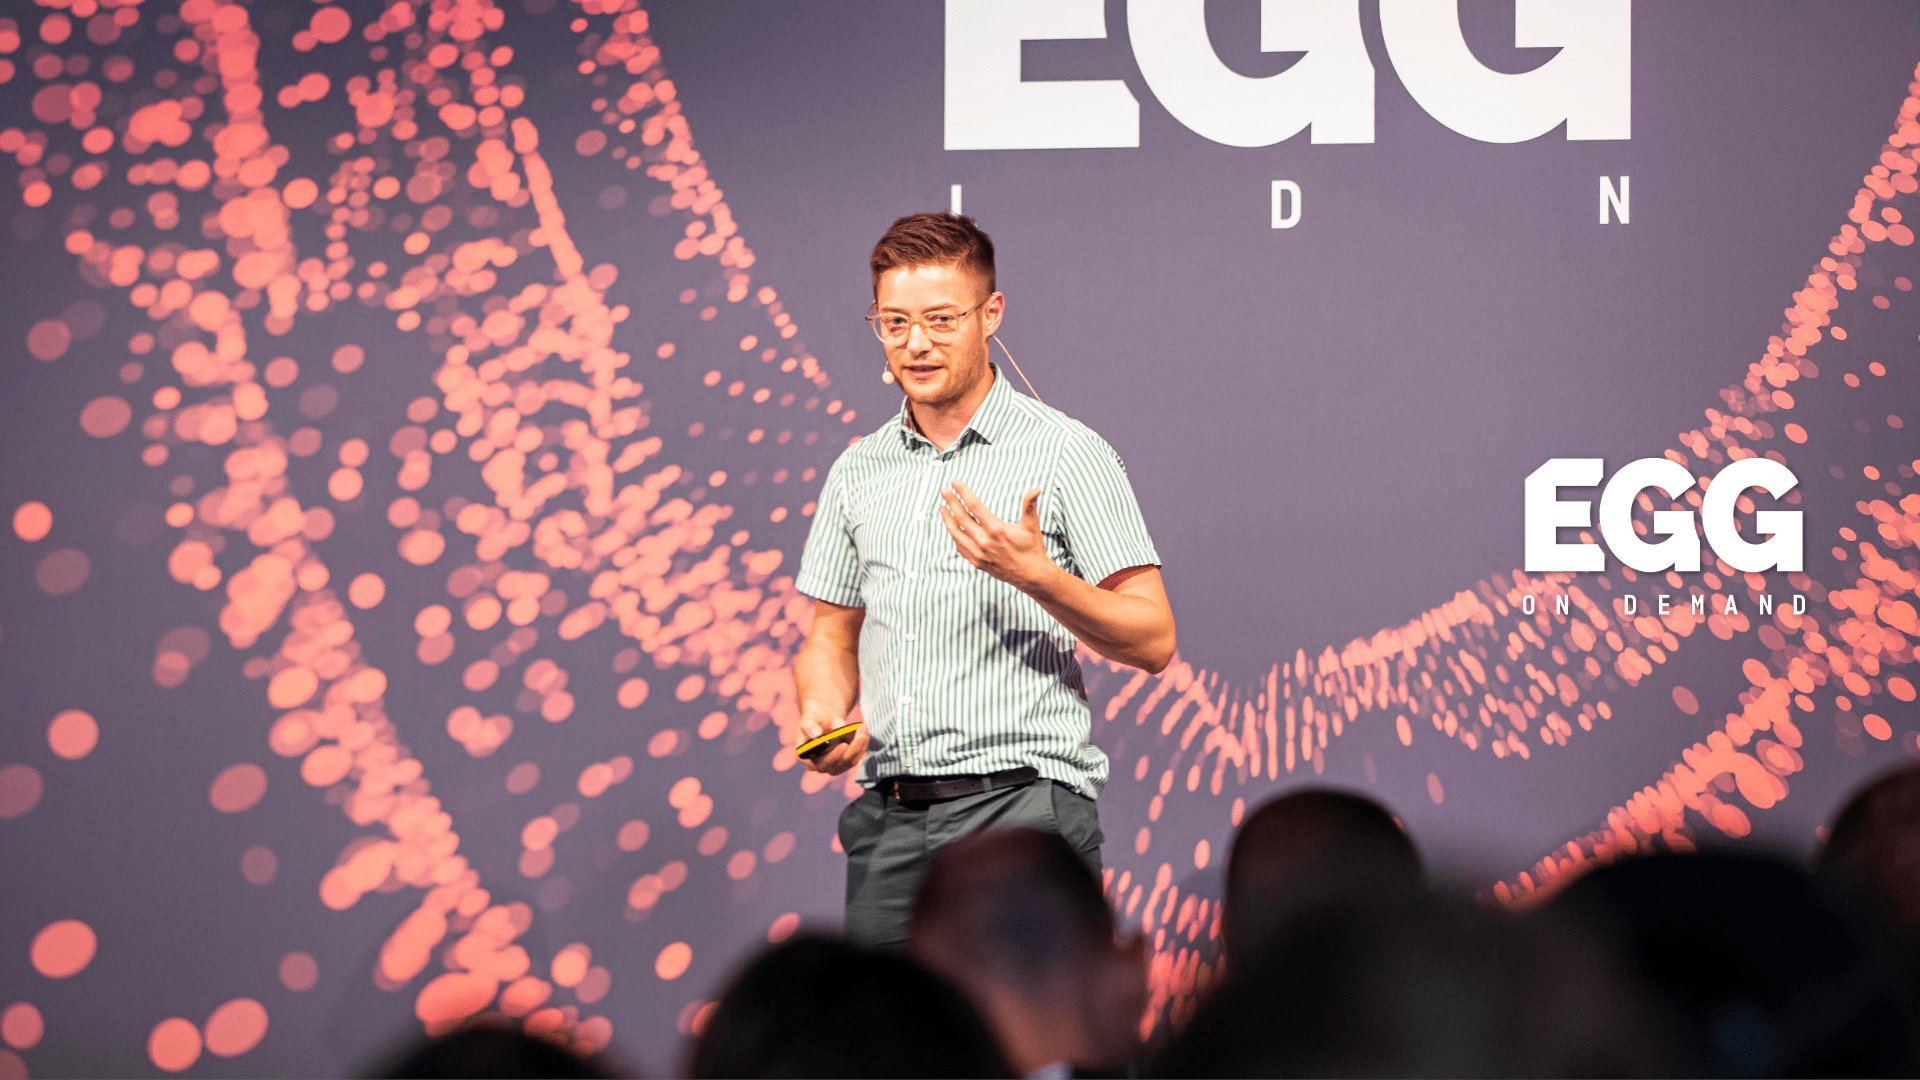 egg on air thumbnail How to Make A Success of Data Science Rendezvous Architecture EGG LDN 2019